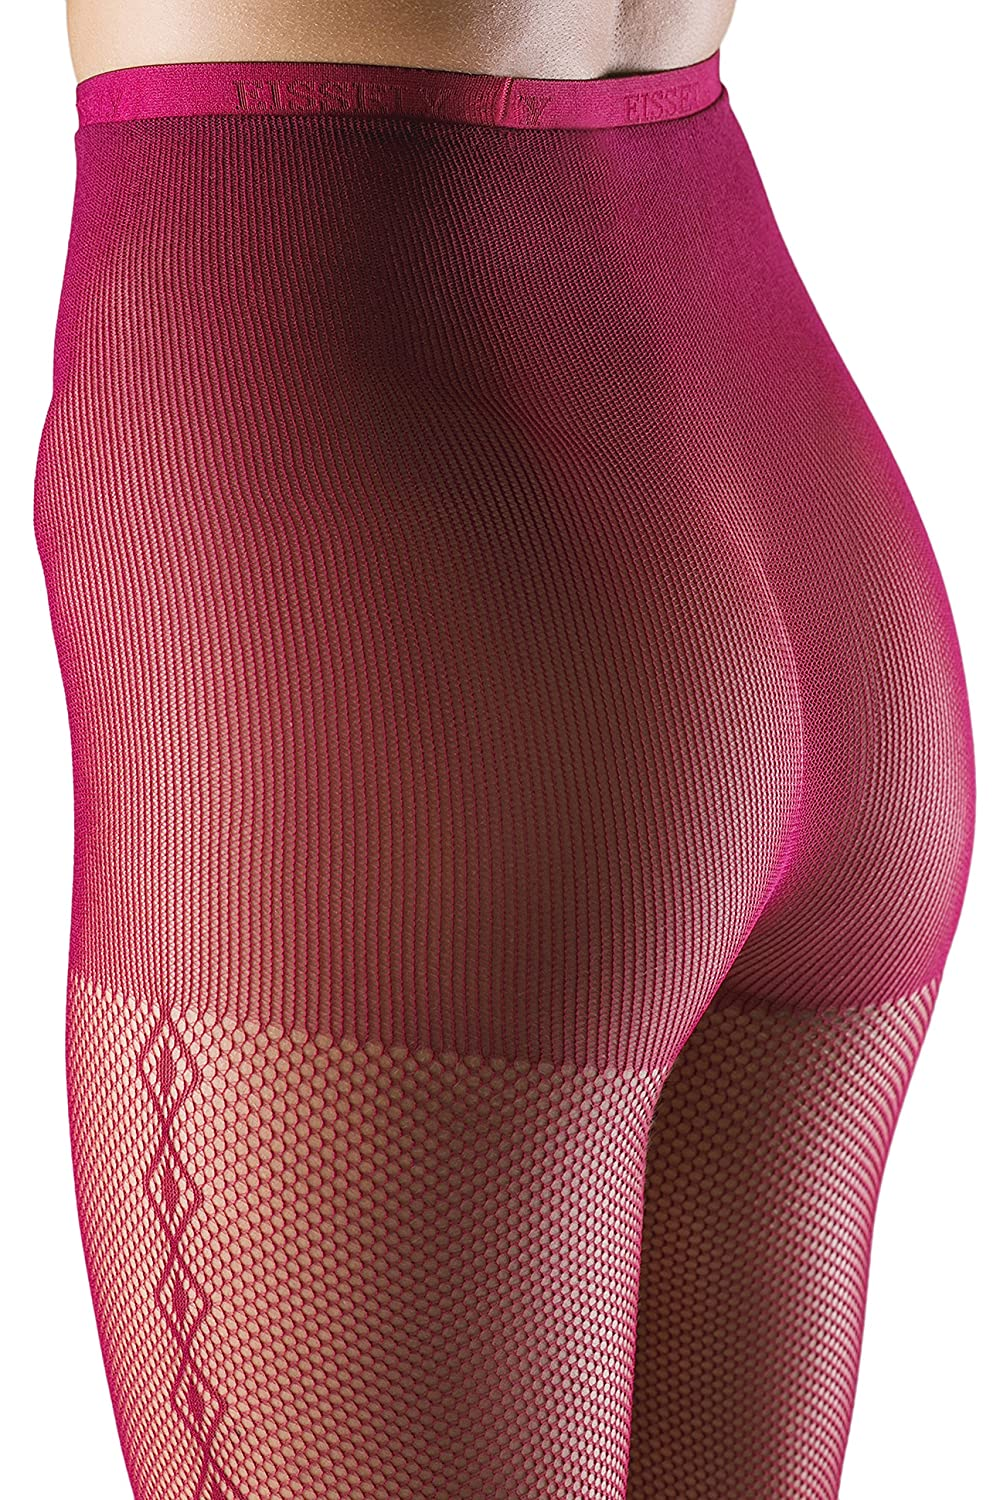 5a9269ec80c4c Fishnet Pantyhose High Waist Control Top Sheer Mesh Tights With Side Seam  Pattern (Small/Medium, Crimson Red) at Amazon Women's Clothing store: